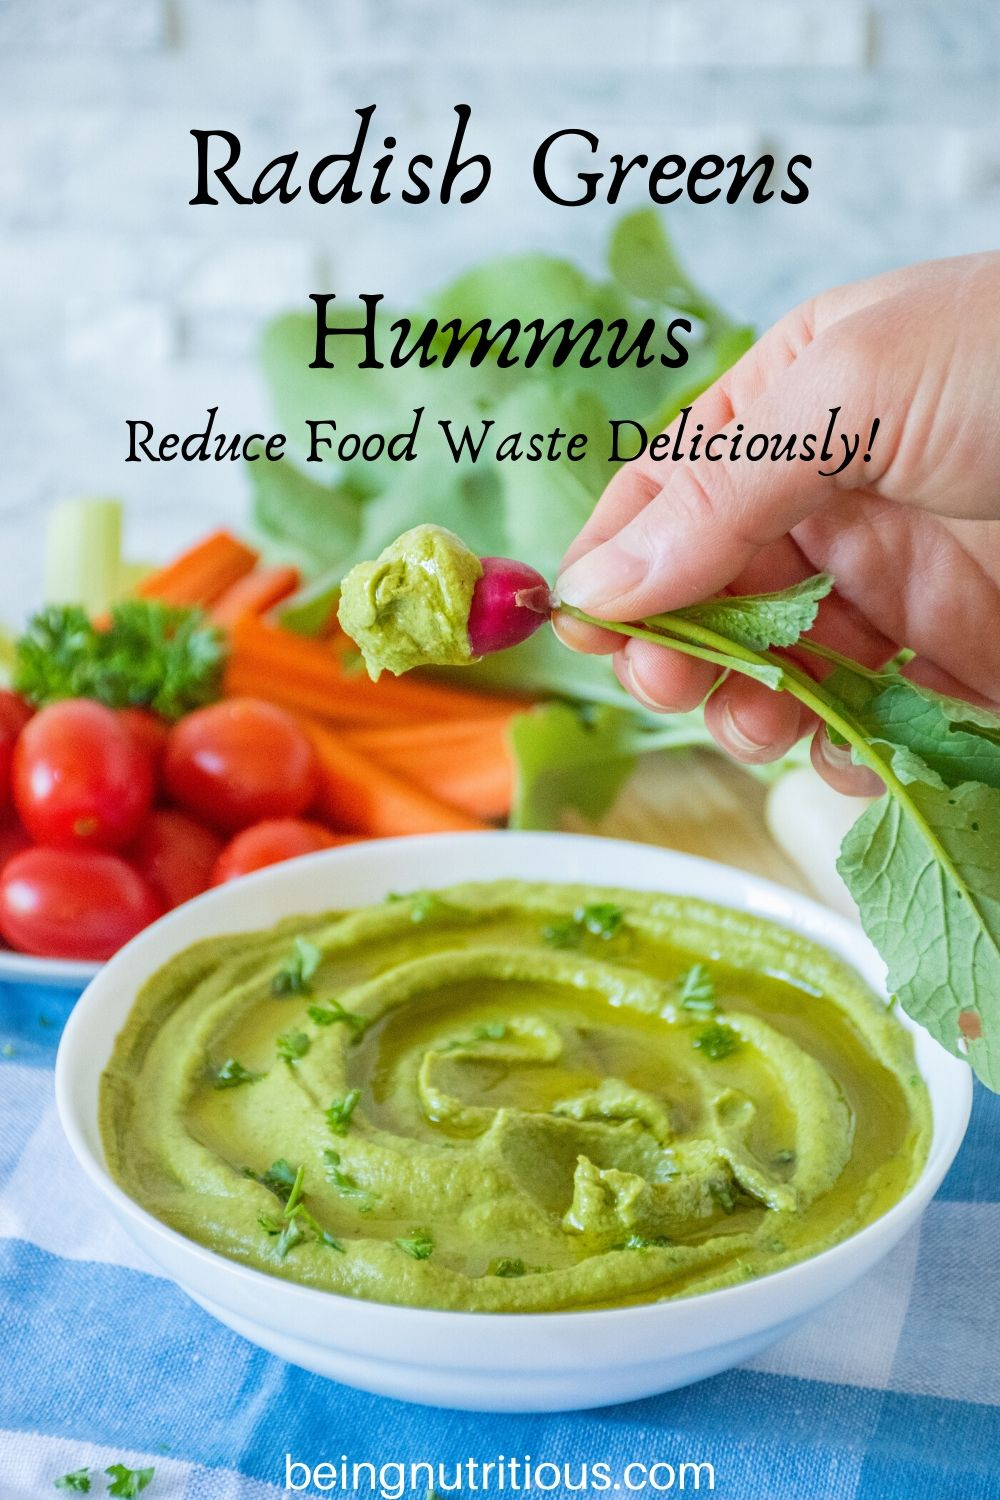 Radish Greens Hummus in a bowl with a hand dipping a radish in it.